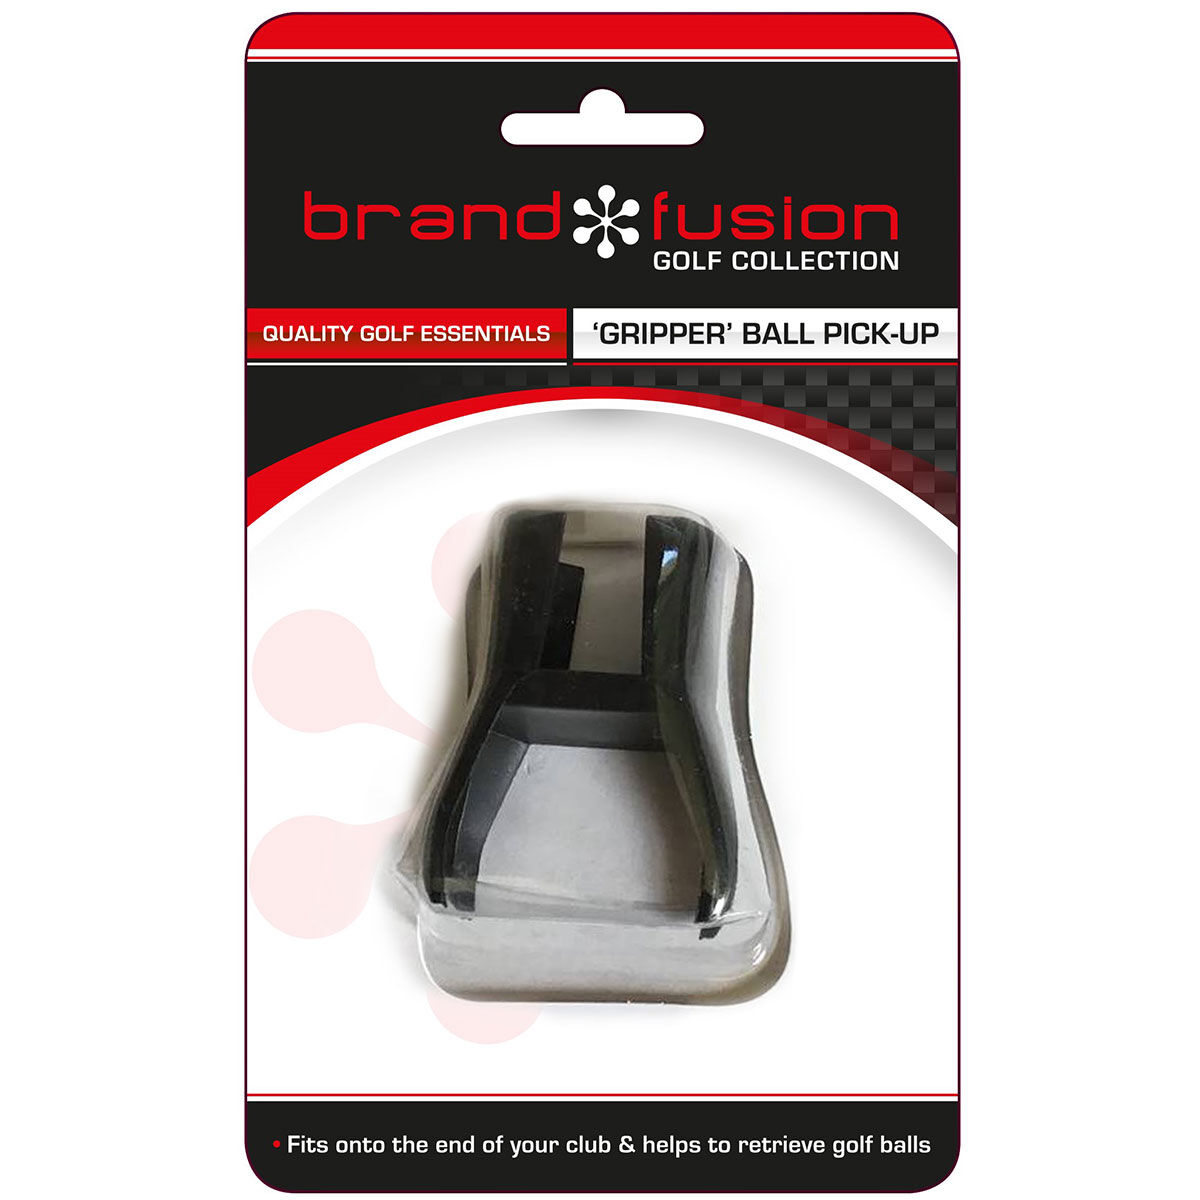 The Golfers Club Black BrandFusion Gripper Ball Pick Up, Size: One Size | American Golf